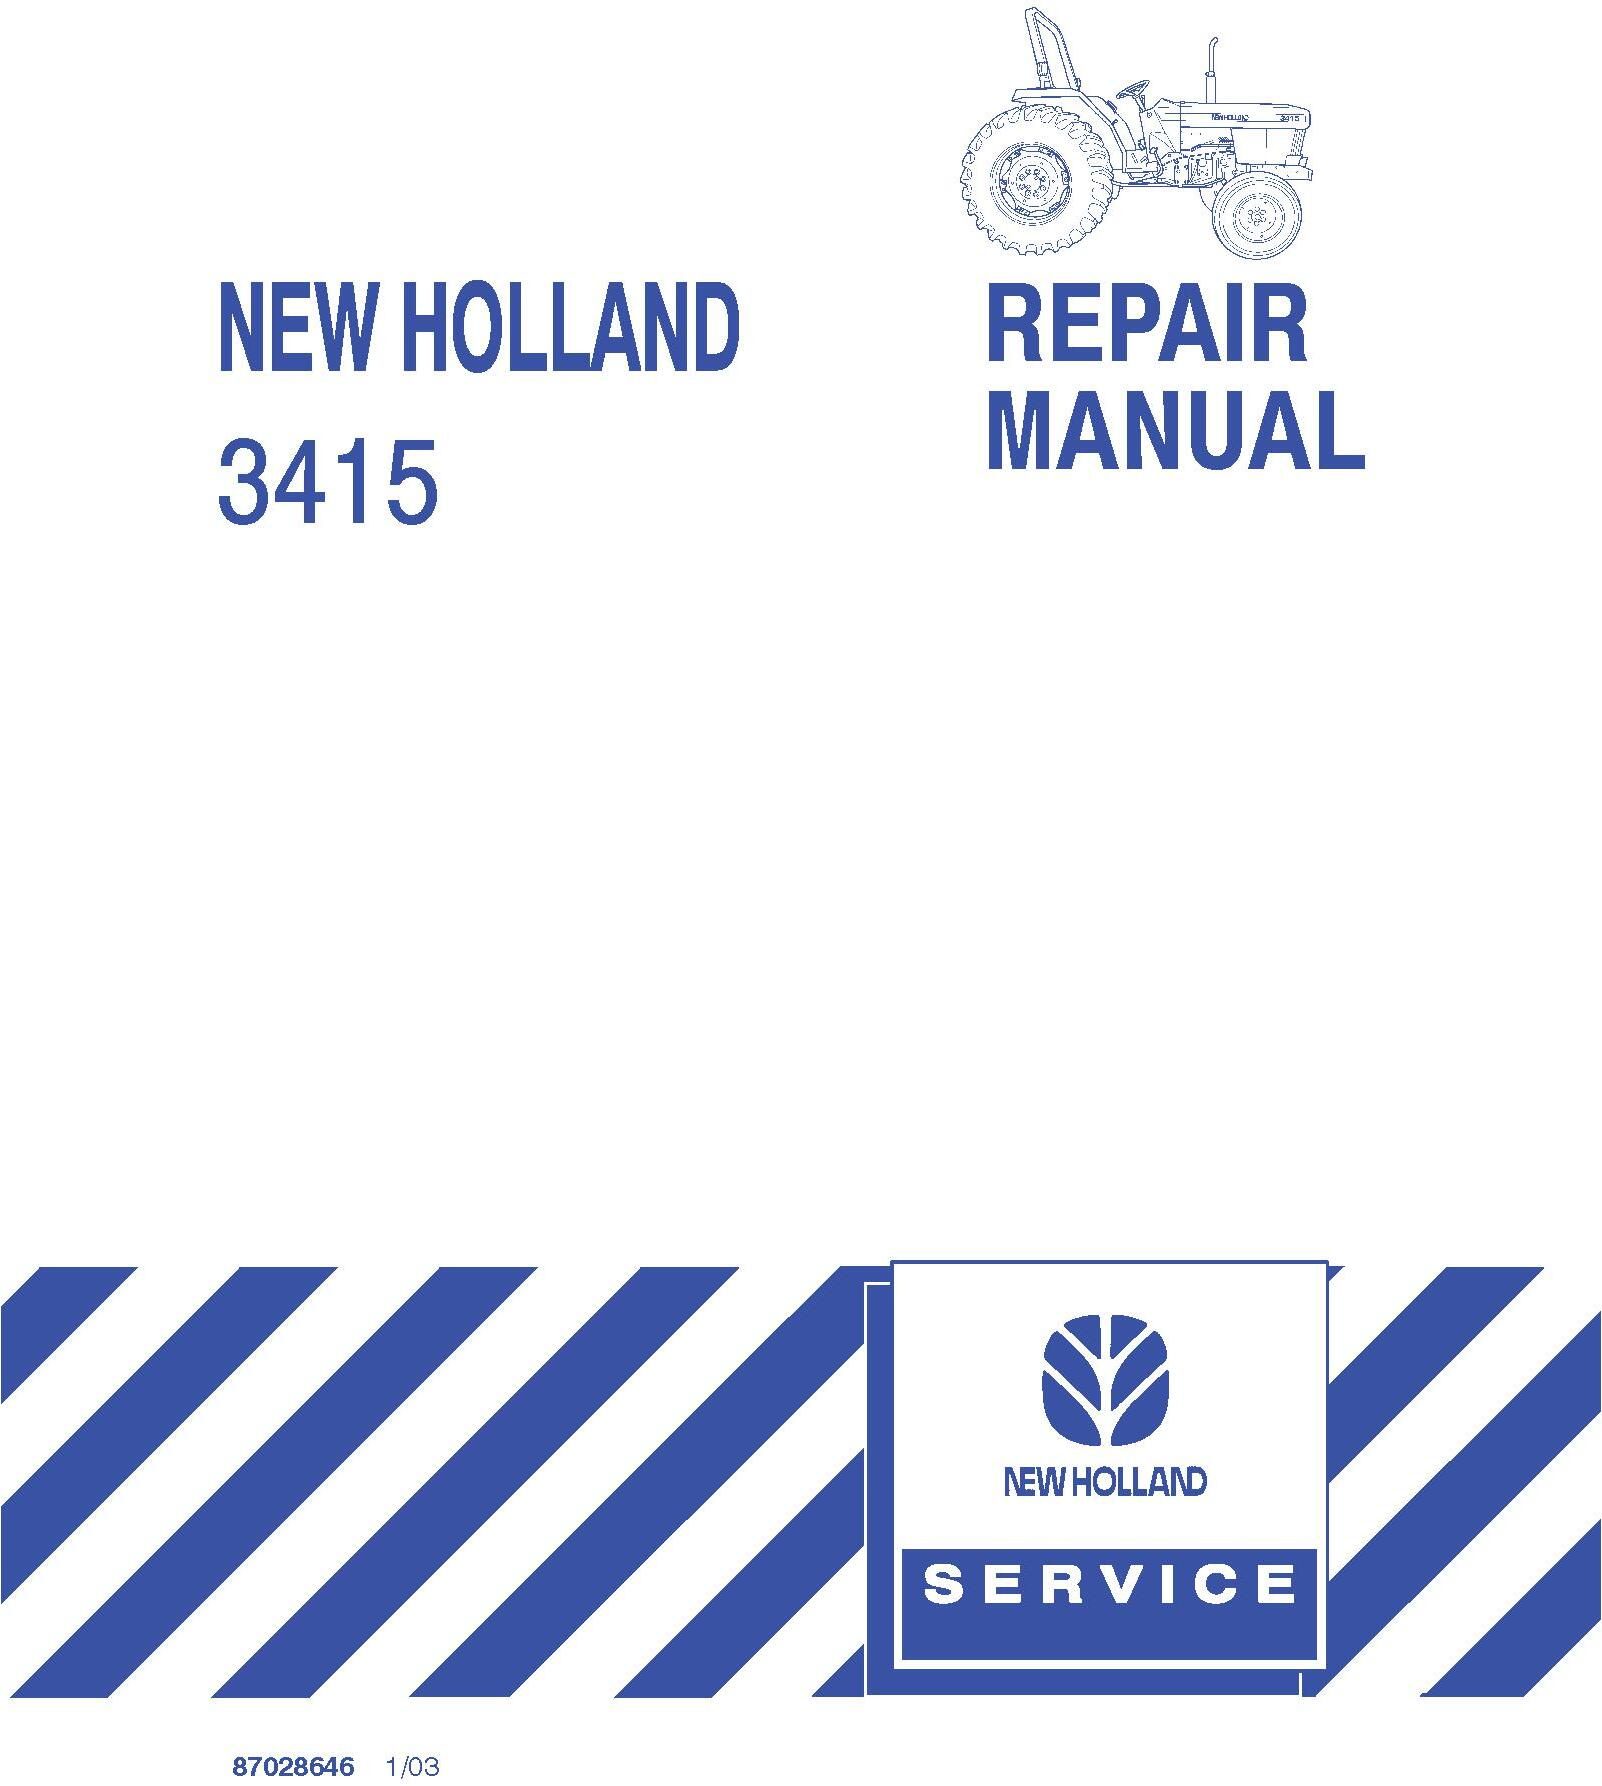 New Holland 3415 Compact Tractor Service Repair Manual - 19597